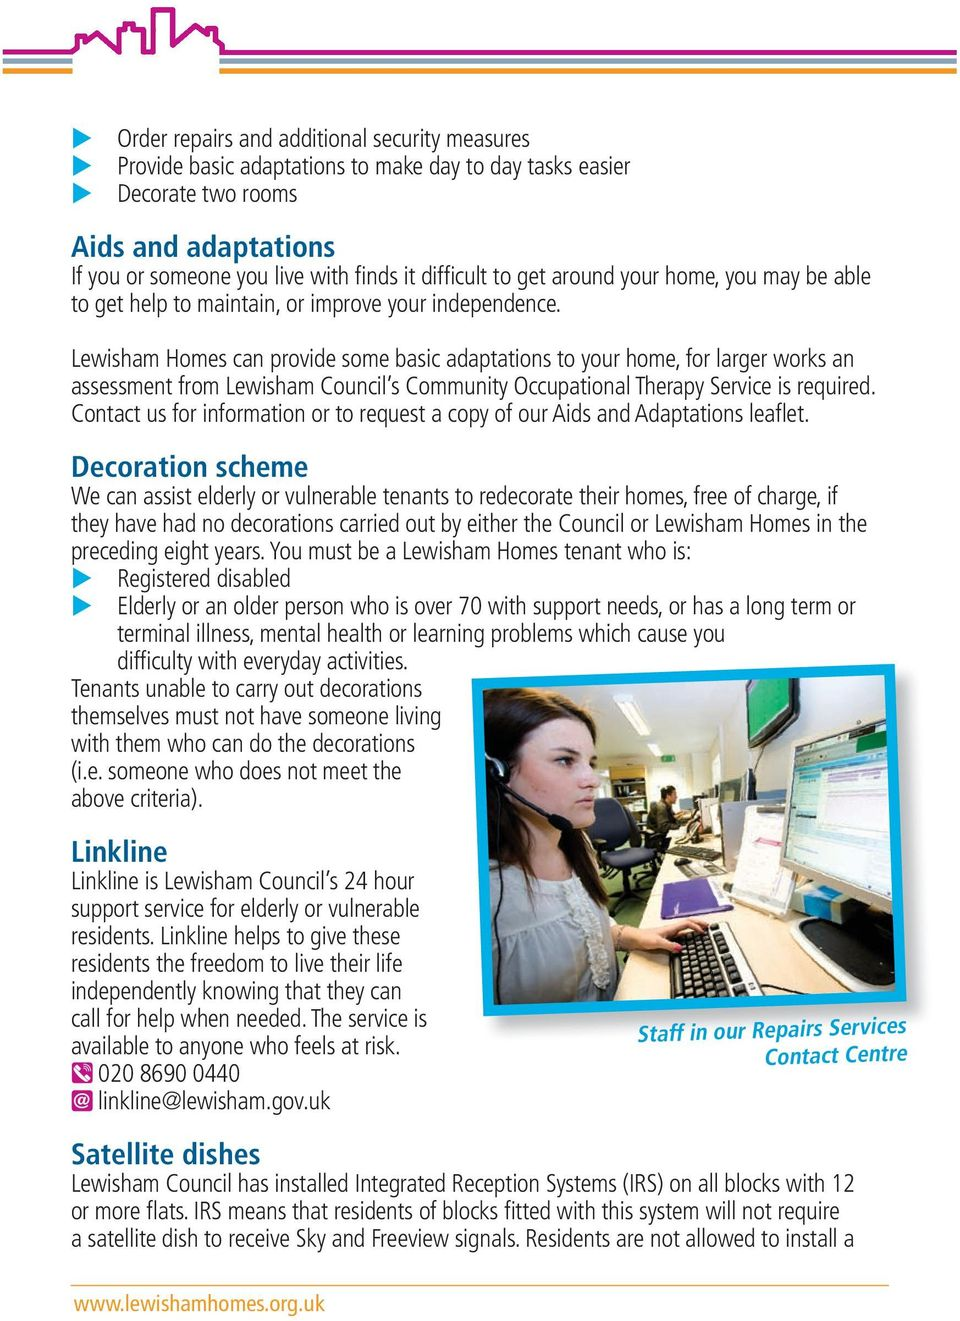 Lewisham Homes can provide some basic adaptations to your home, for larger works an assessment from Lewisham Council s Community Occupational Therapy Service is required.